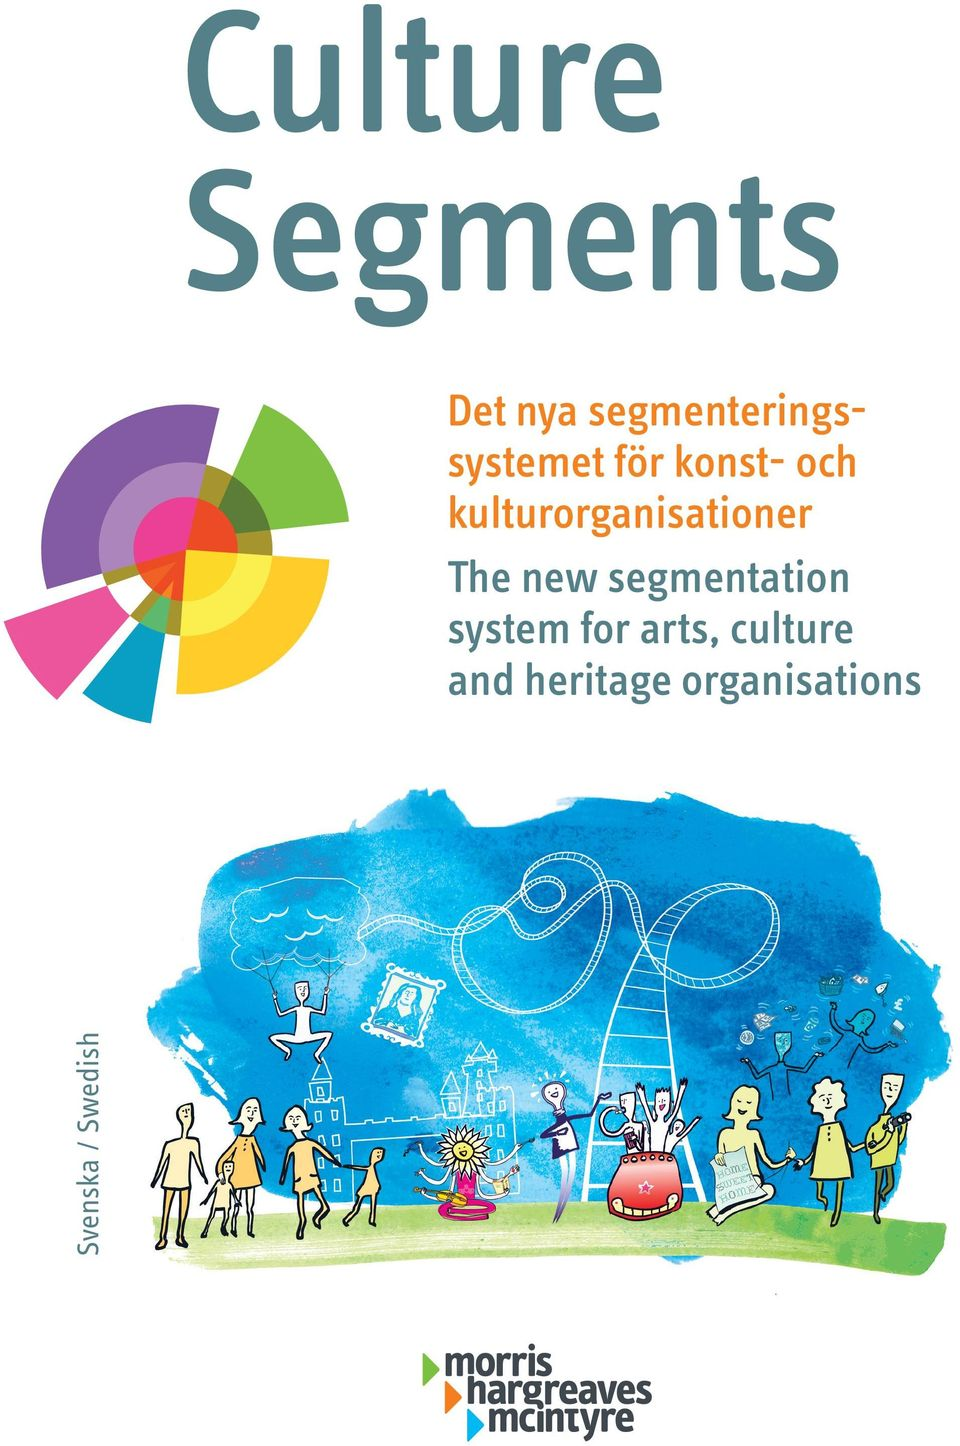 kulturorganisationer The new segmentation